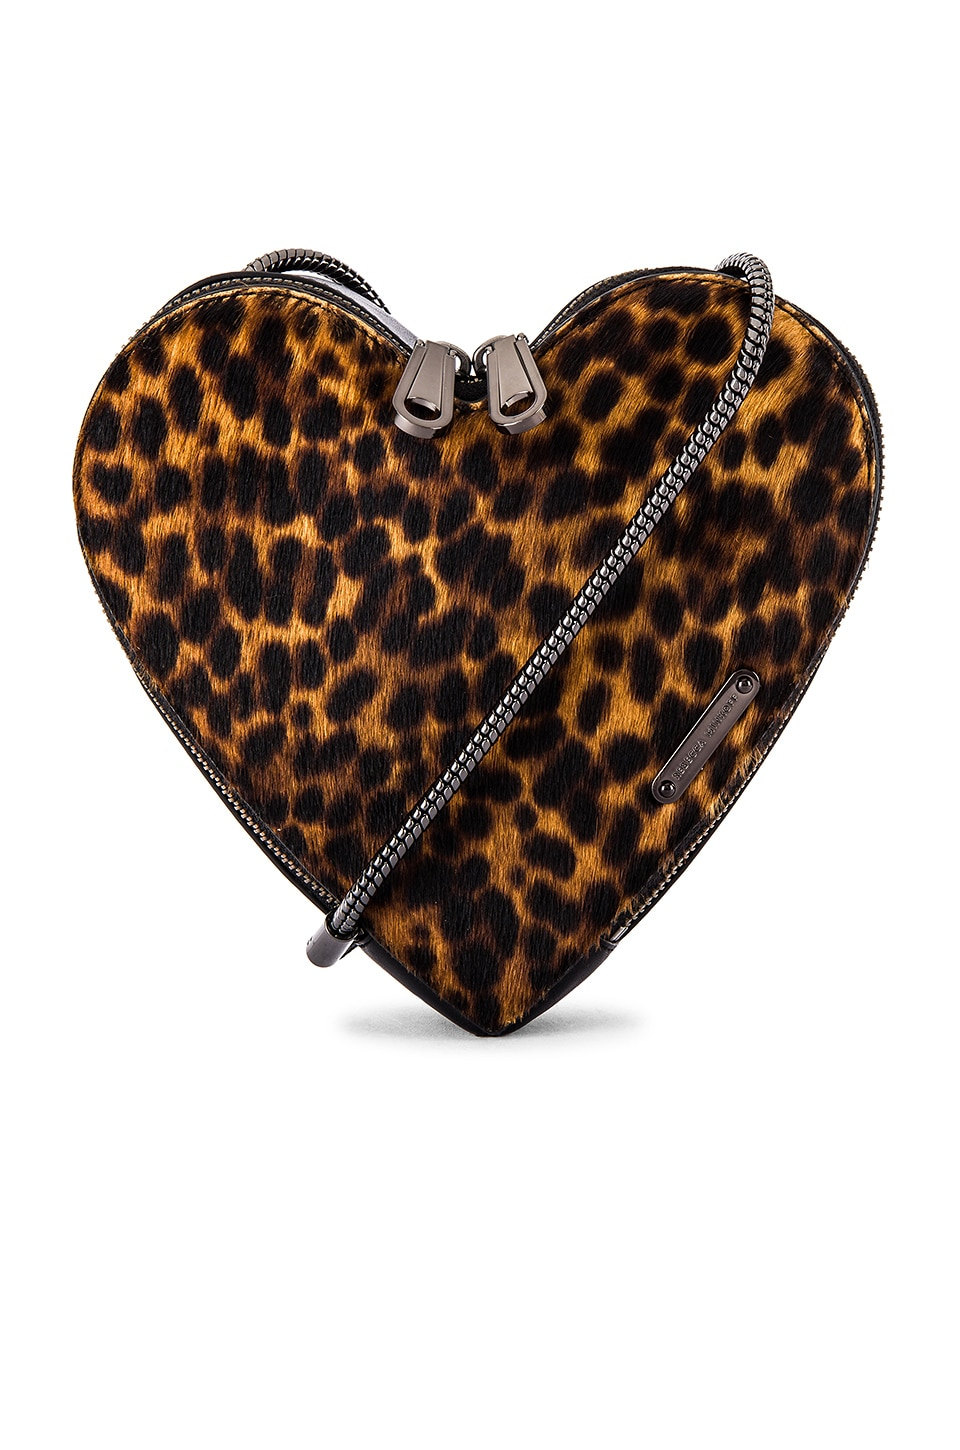 Rebecca Minkoff Heart Crossbody in Natural